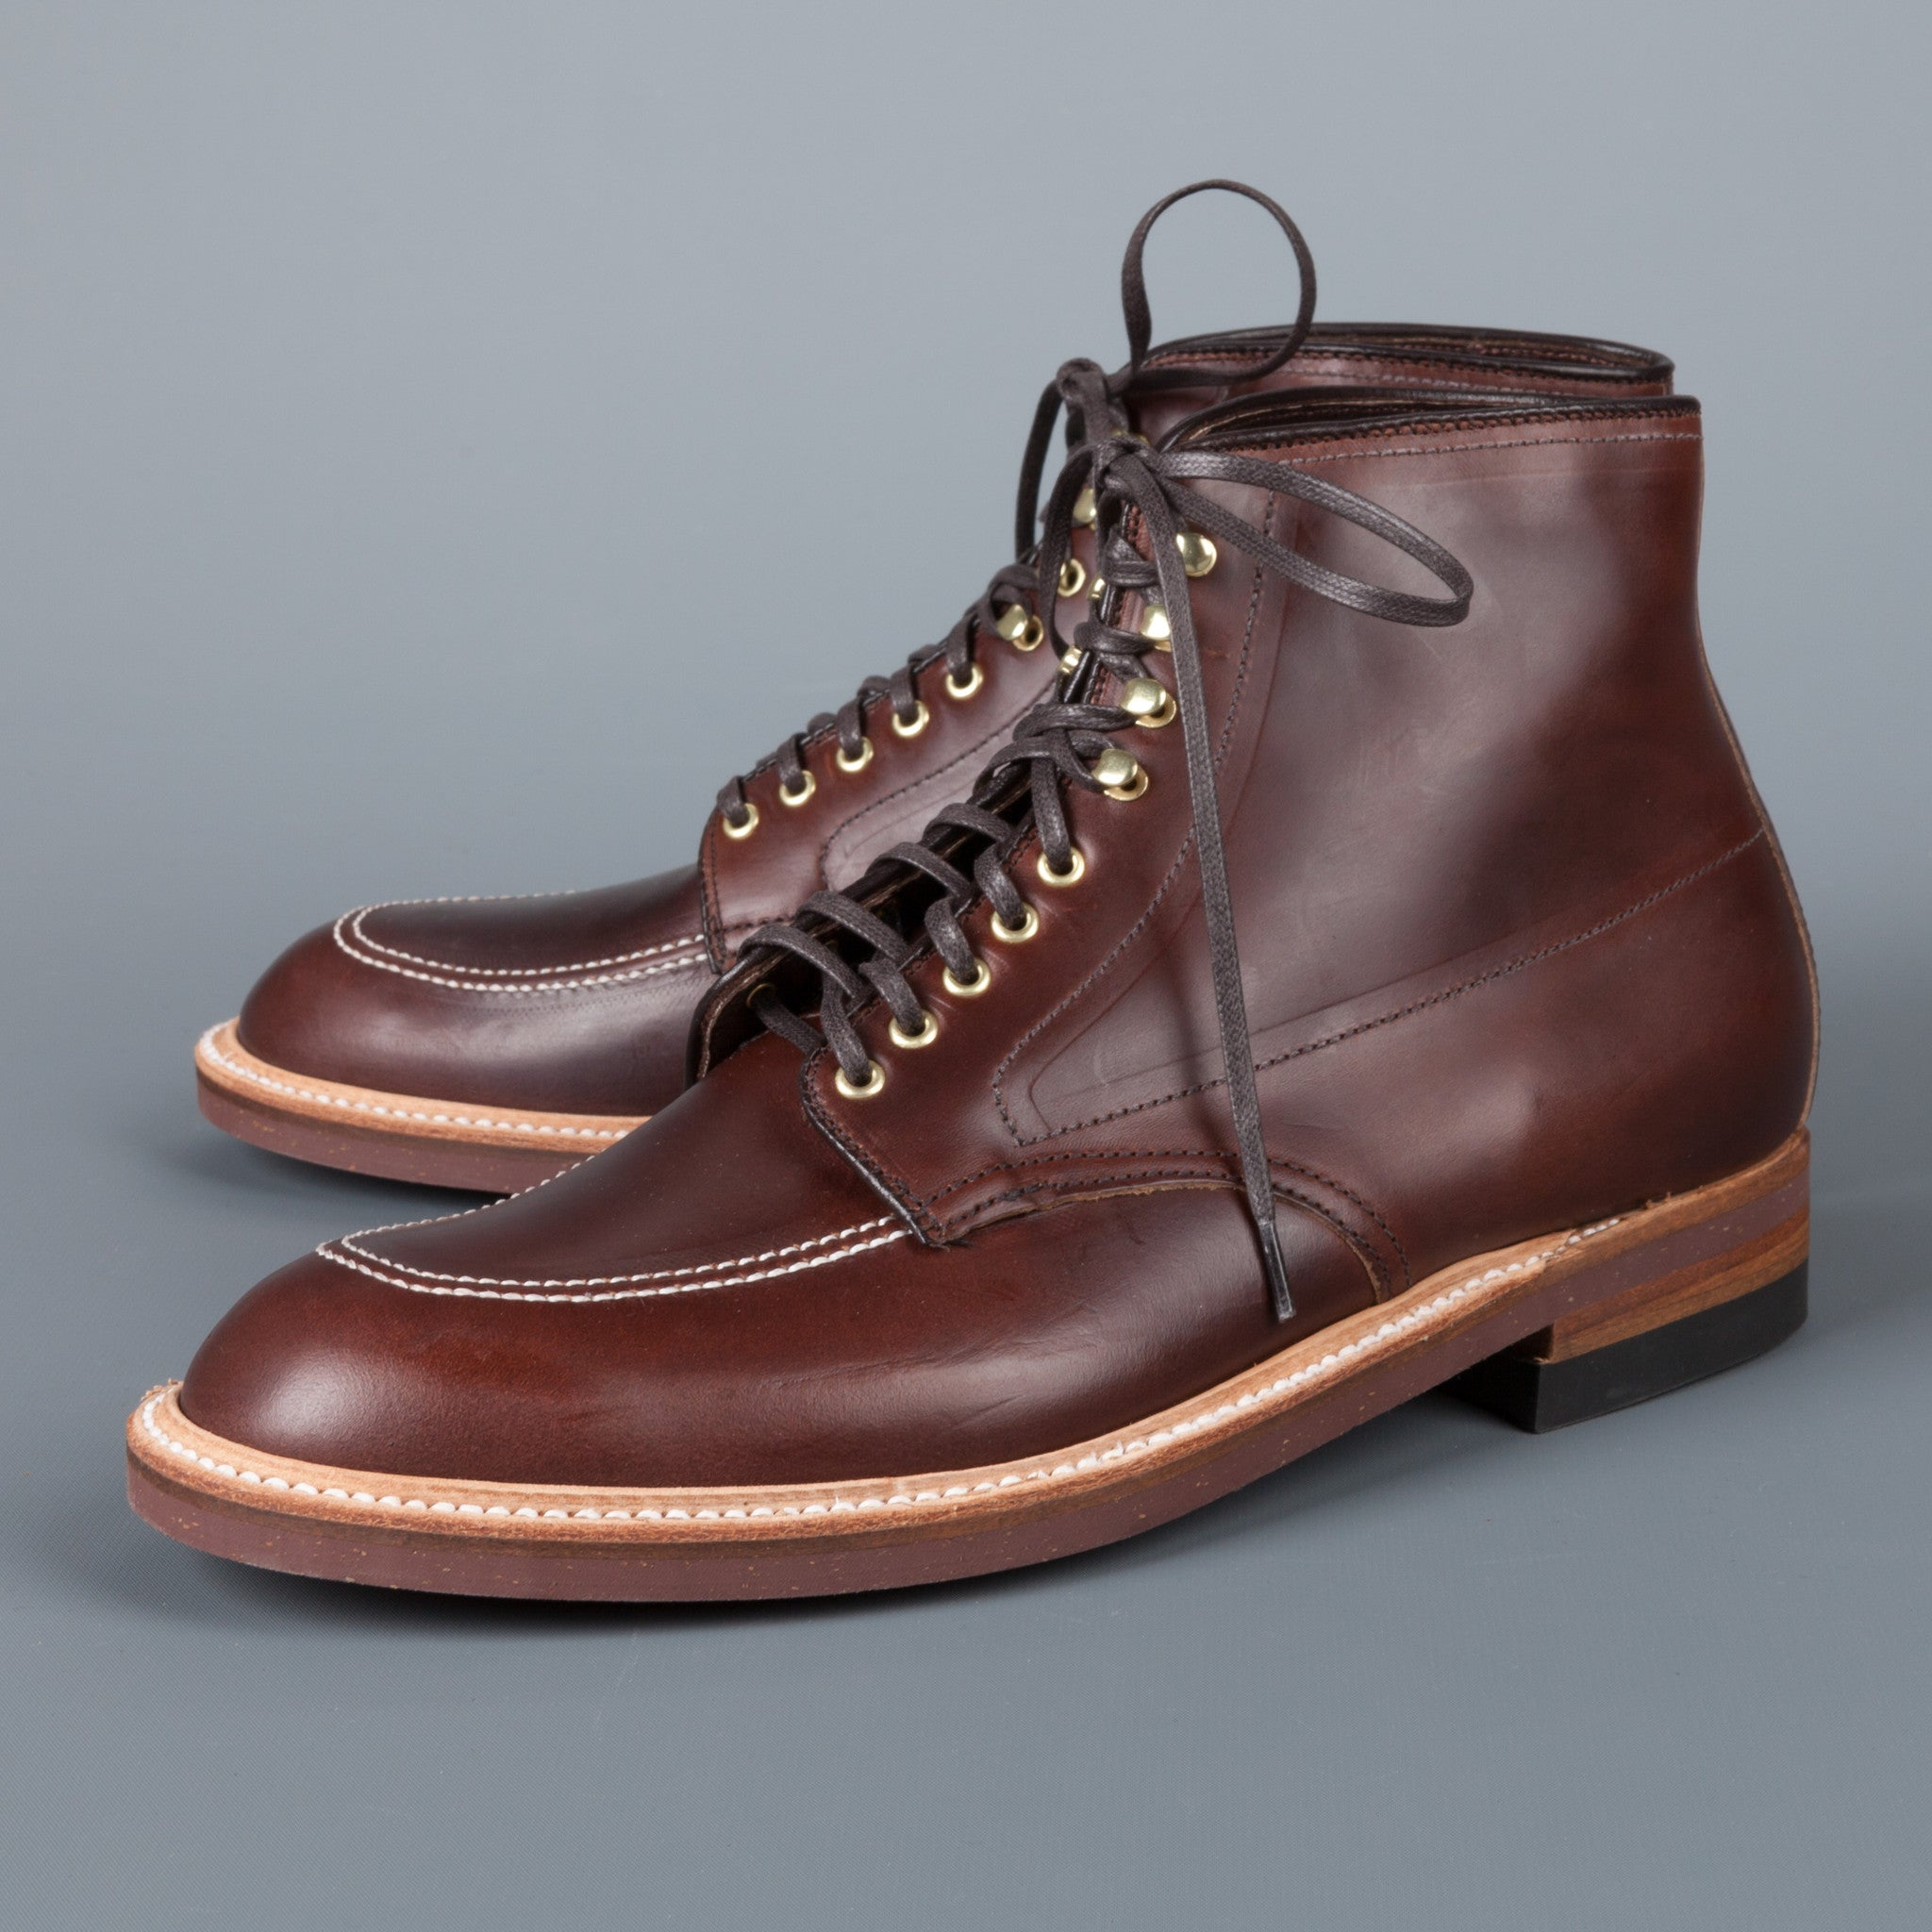 Re stock alden x frans boone brown chromexcel indy boots for The alden